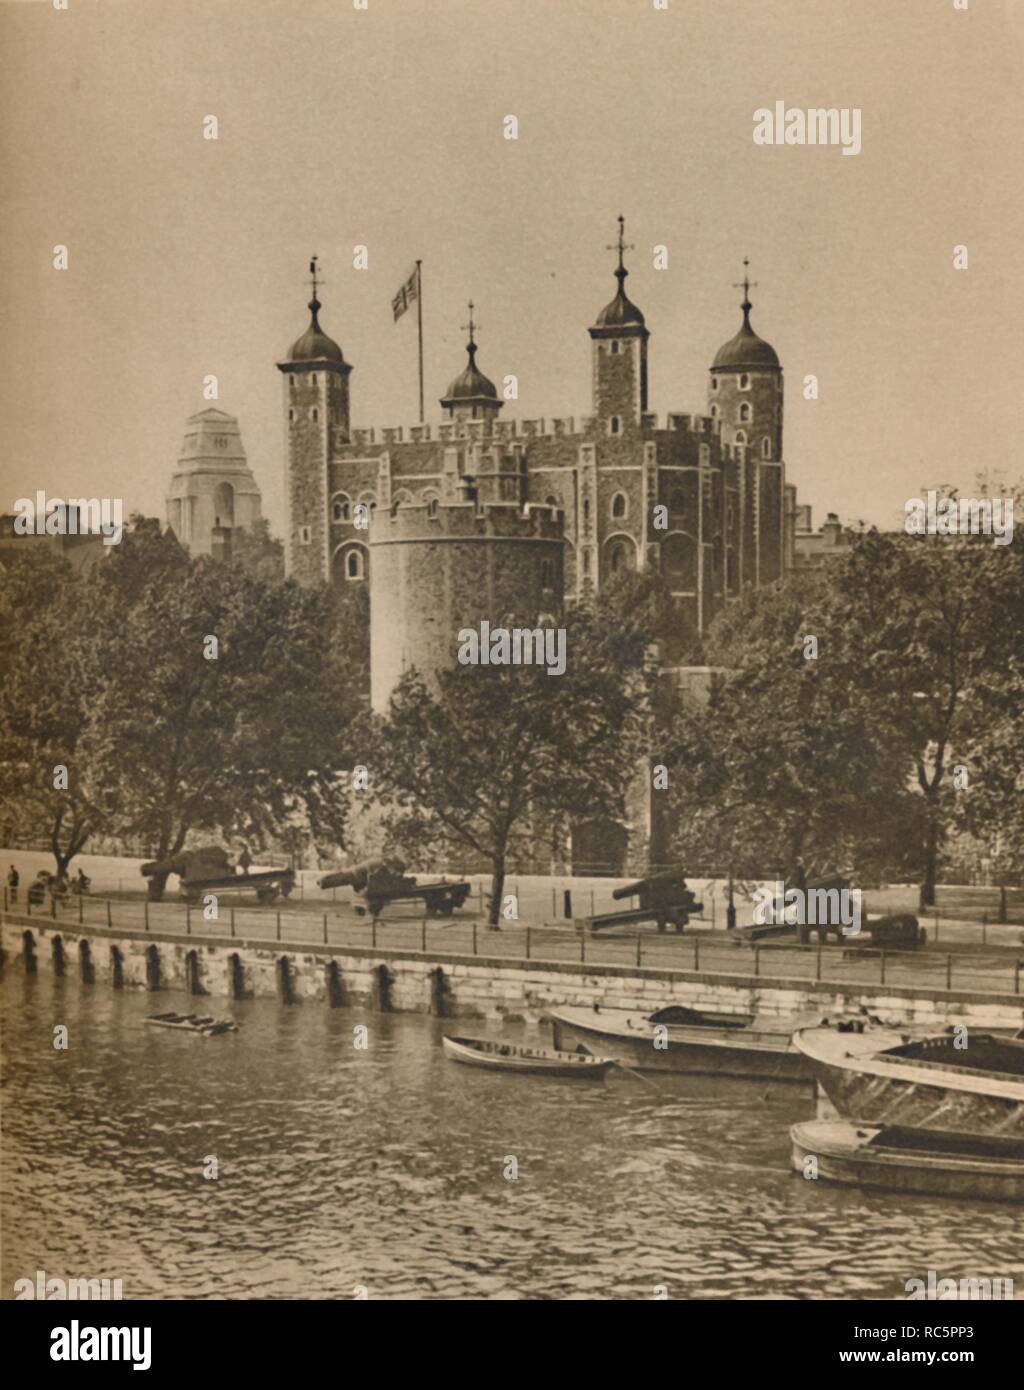 "'London's Oldest and Newest Public Buildings from Tower Bridge', c1935. The White Tower - built by William the Conqueror during the early 1080s - seen from the River Thames, with cannon on the bank and barges in the foreground. To the left is the Port of London Authority building at Tower Hill, designed by Sir Edwin Cooper and built 1912-1922. From ""Wonderful London, Volume 1"", edited by Arthur St John Adcock. [The Fleetway House, London, c1935] - Stock Image"